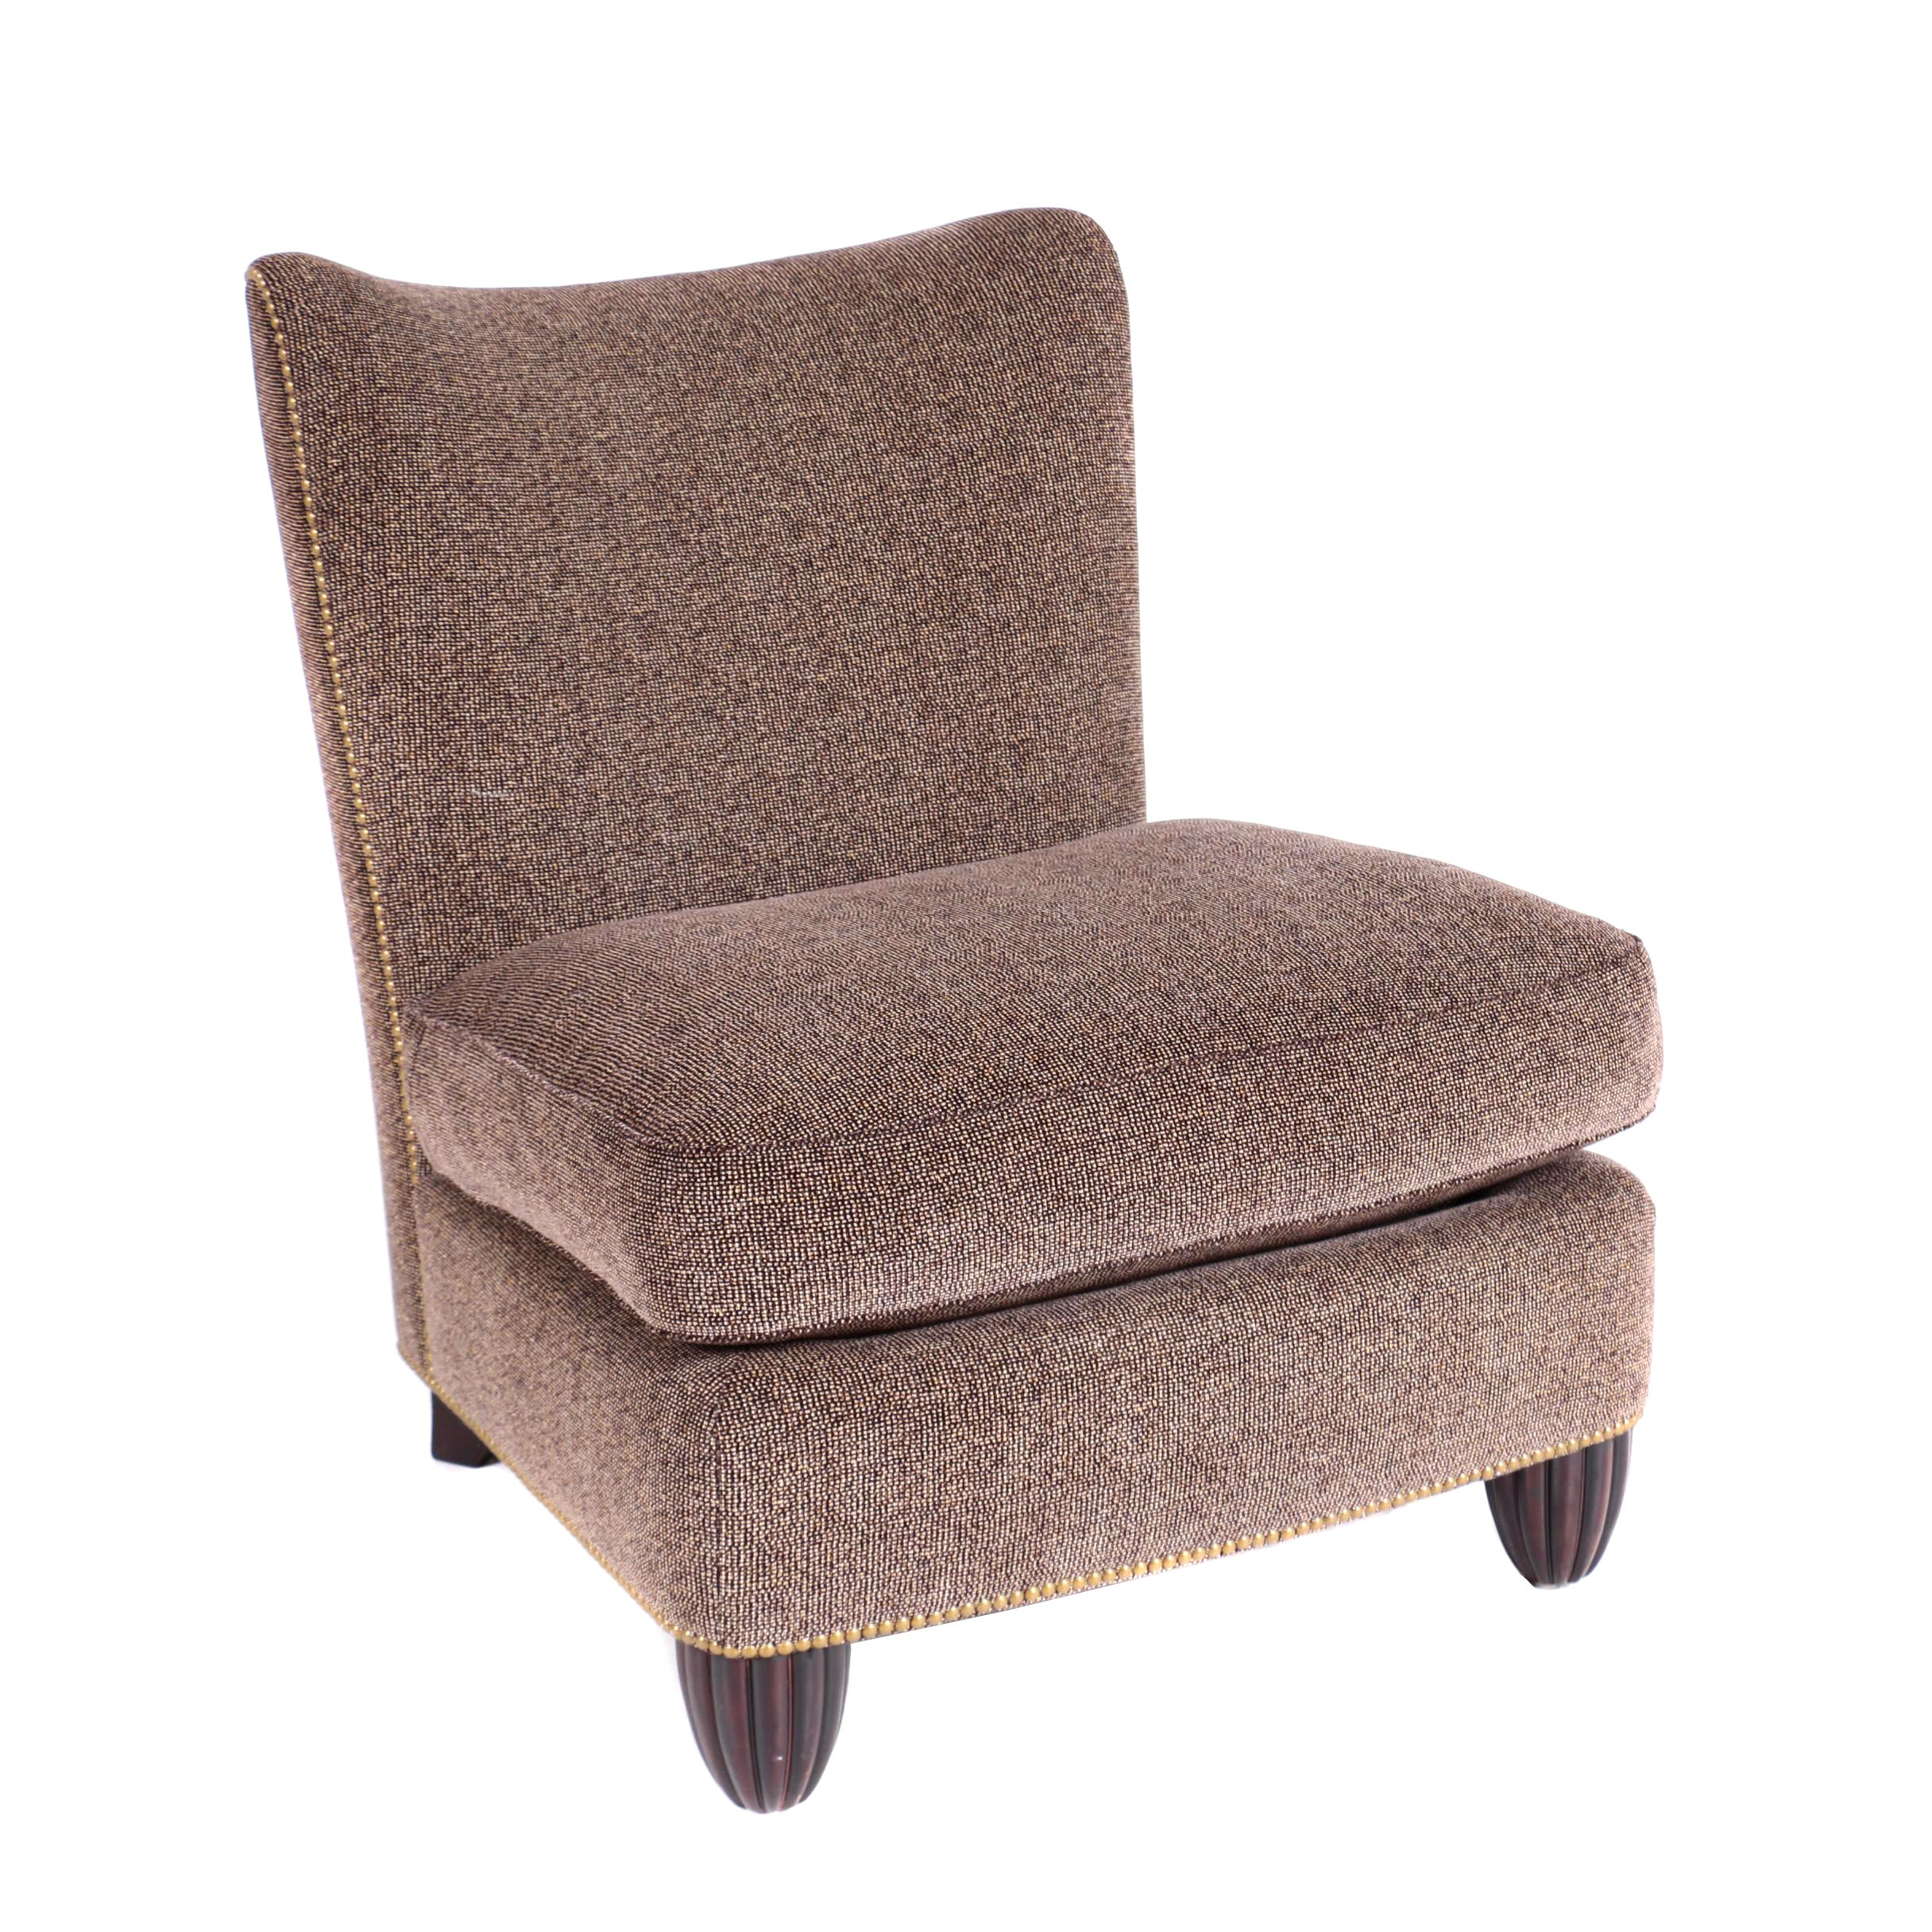 brown slipper chair tufted accent chairs custom upholstered ebth